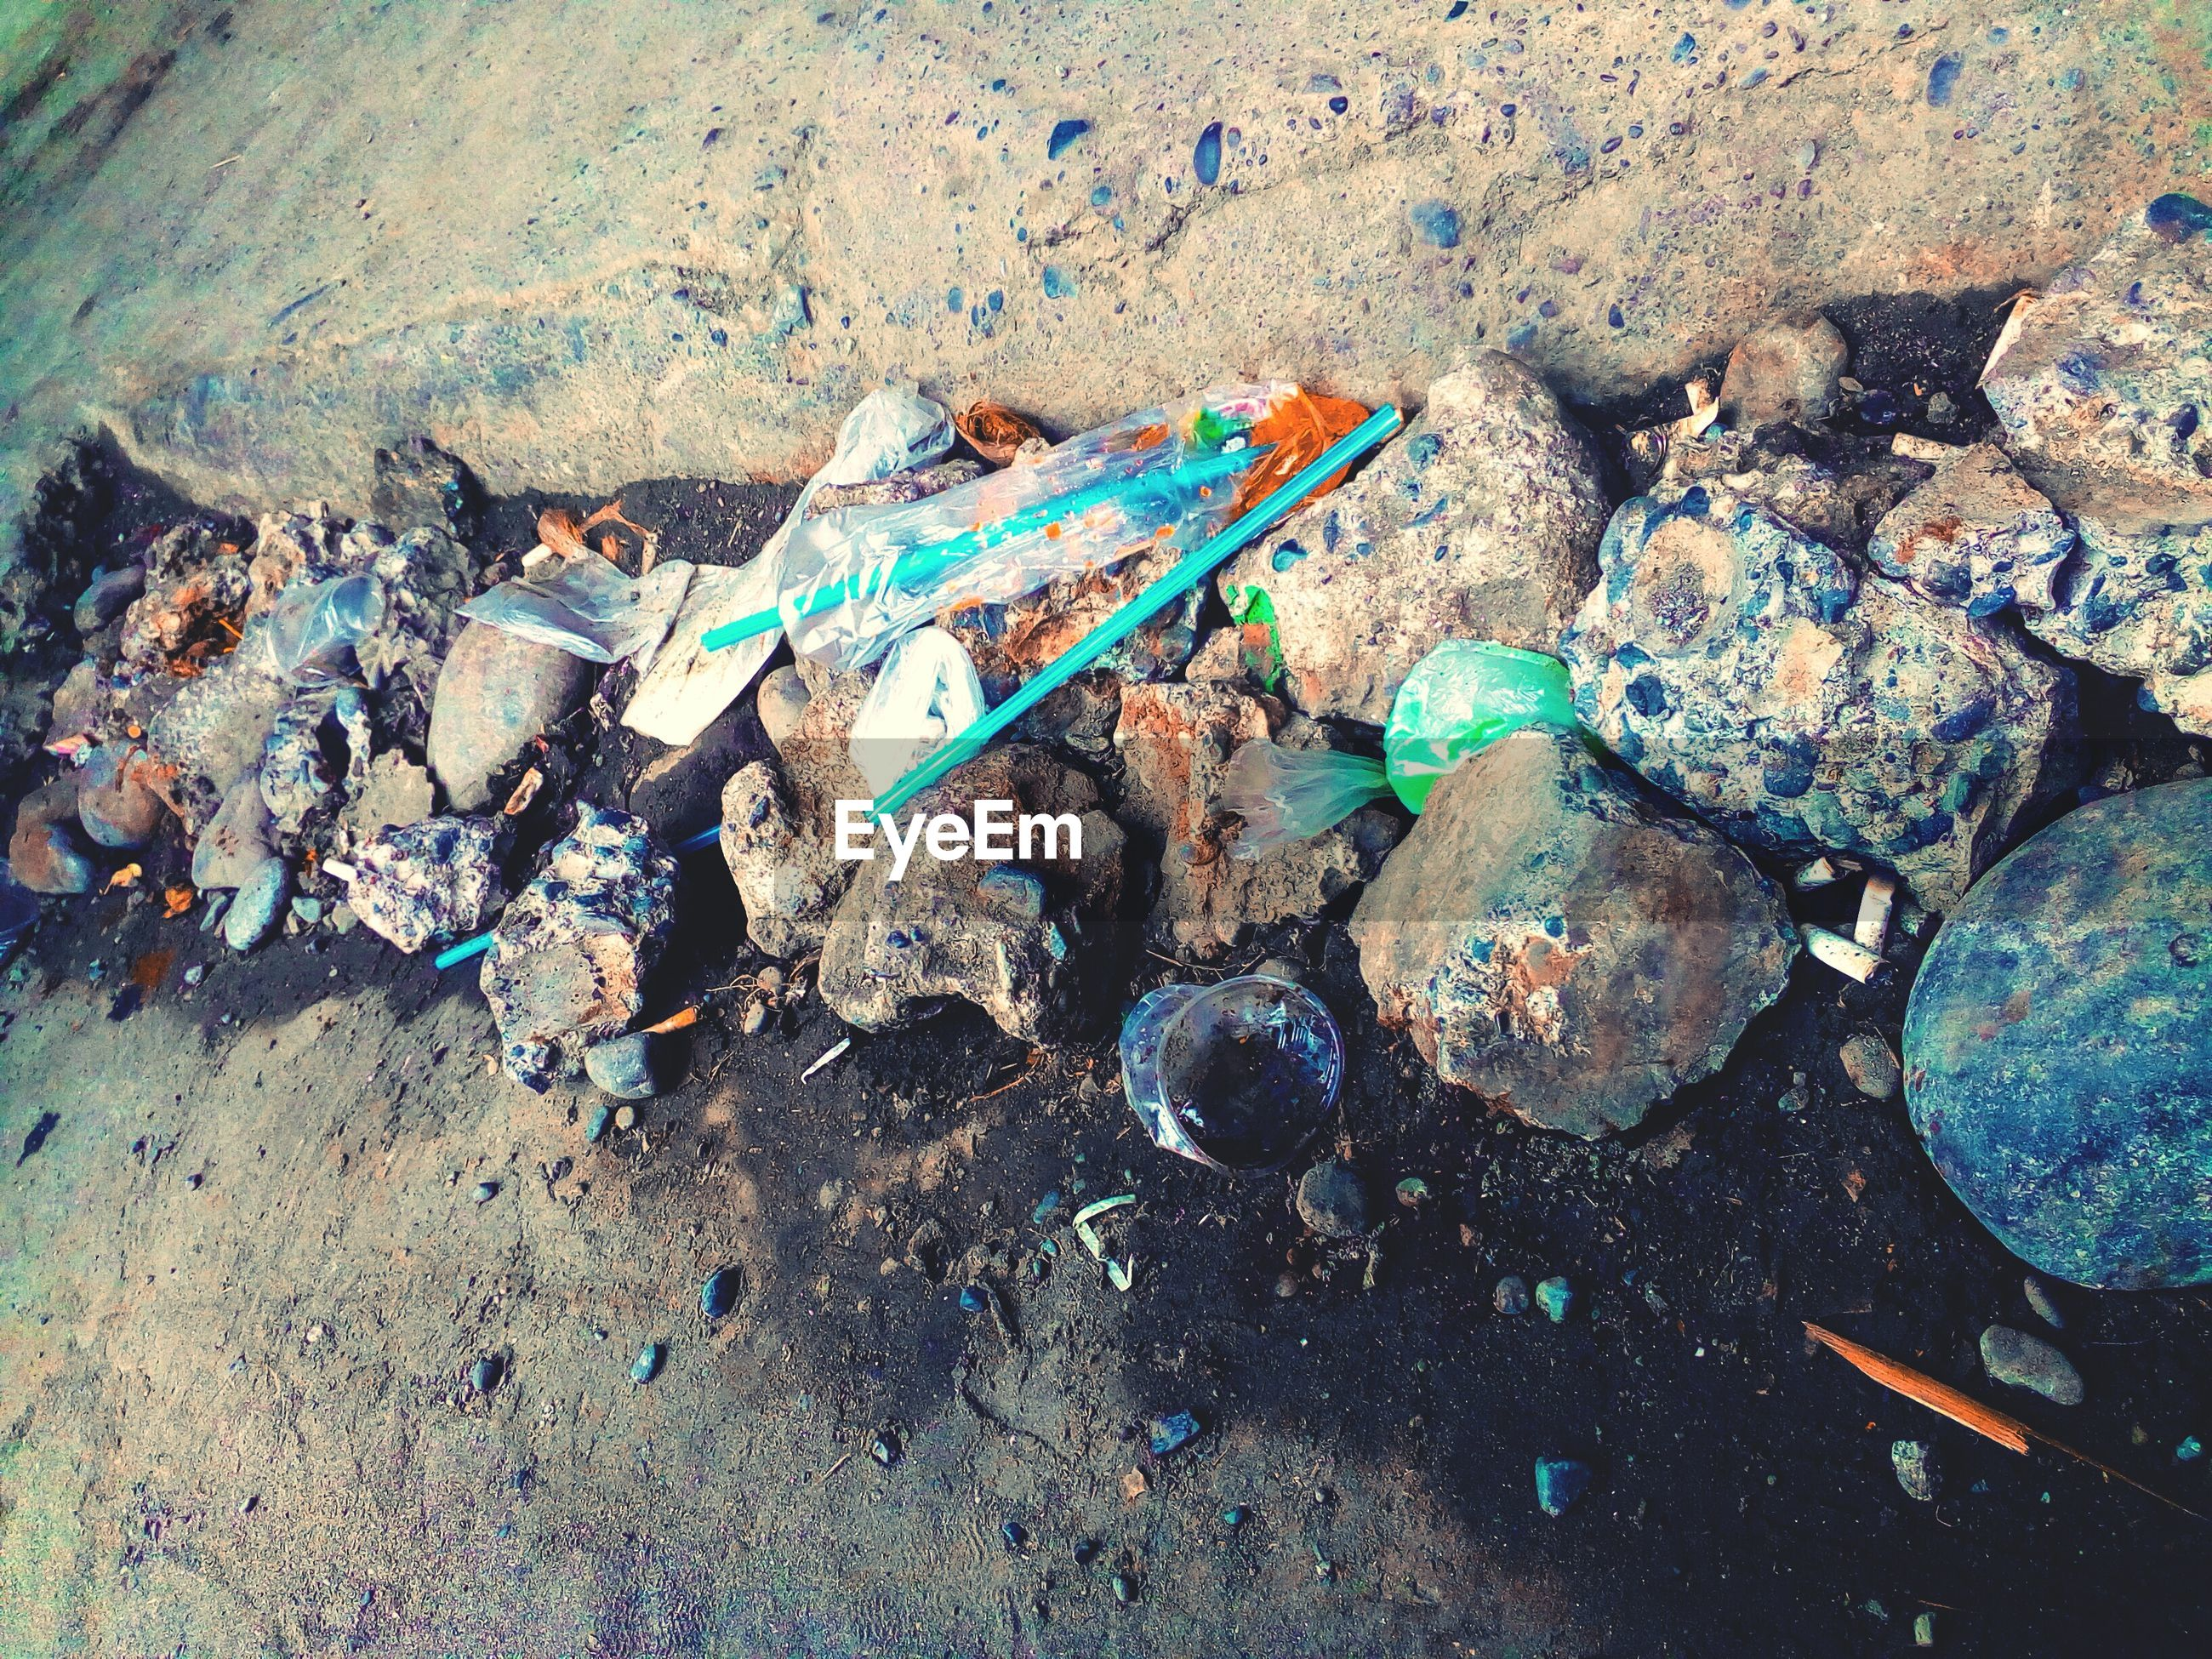 High angle view of garbage on rocks at beach